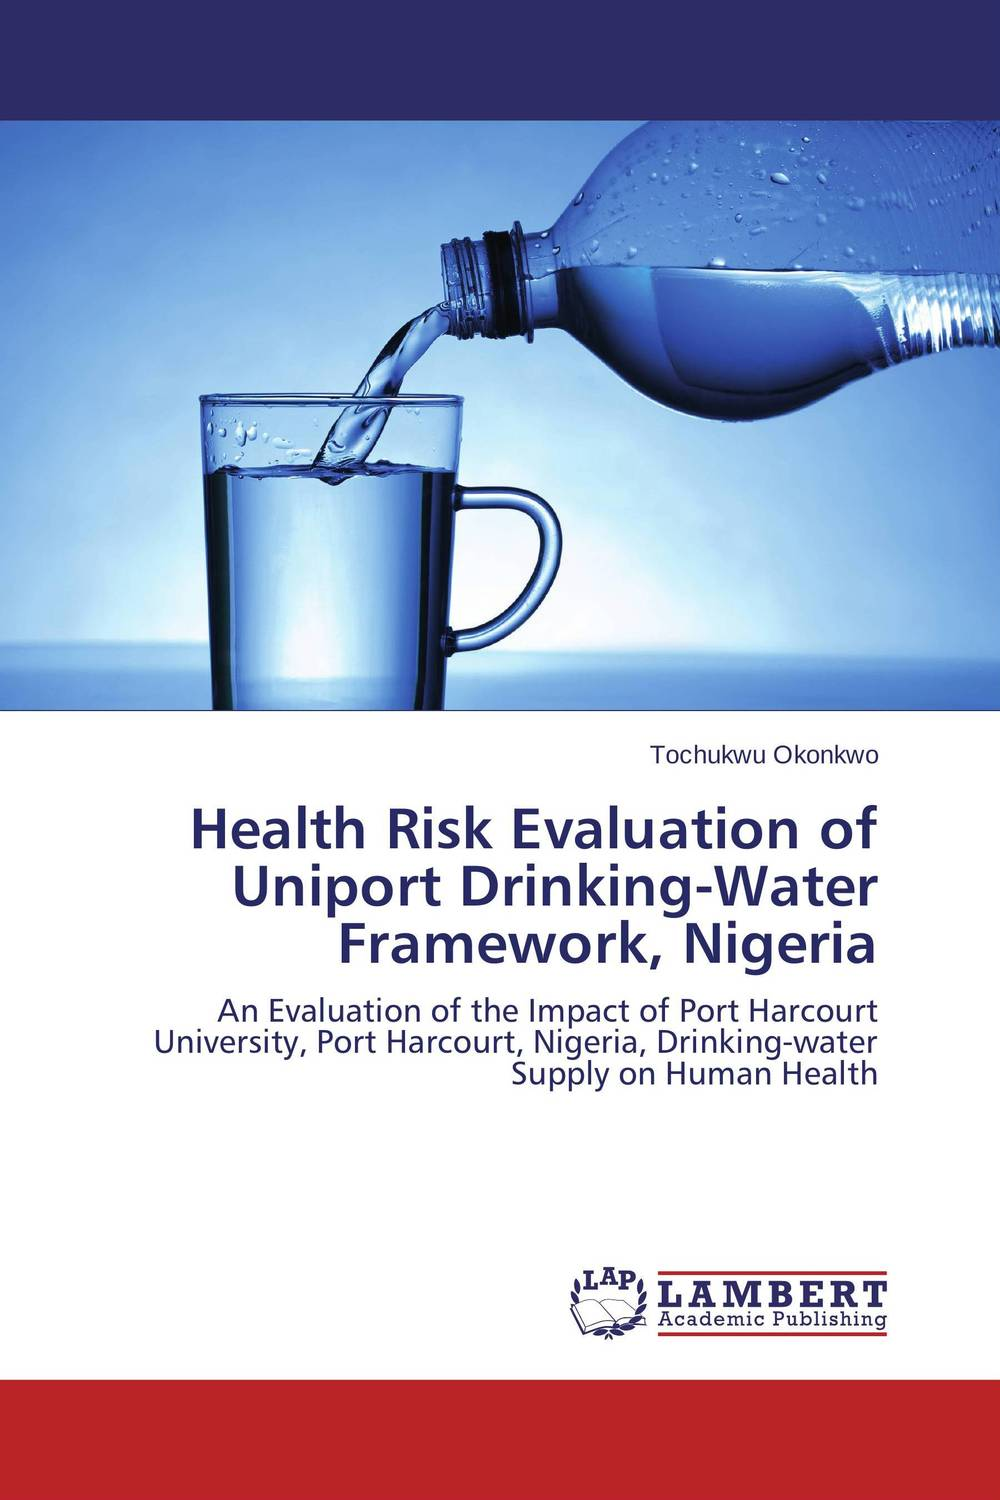 Health Risk Evaluation of Uniport Drinking-Water Framework, Nigeria